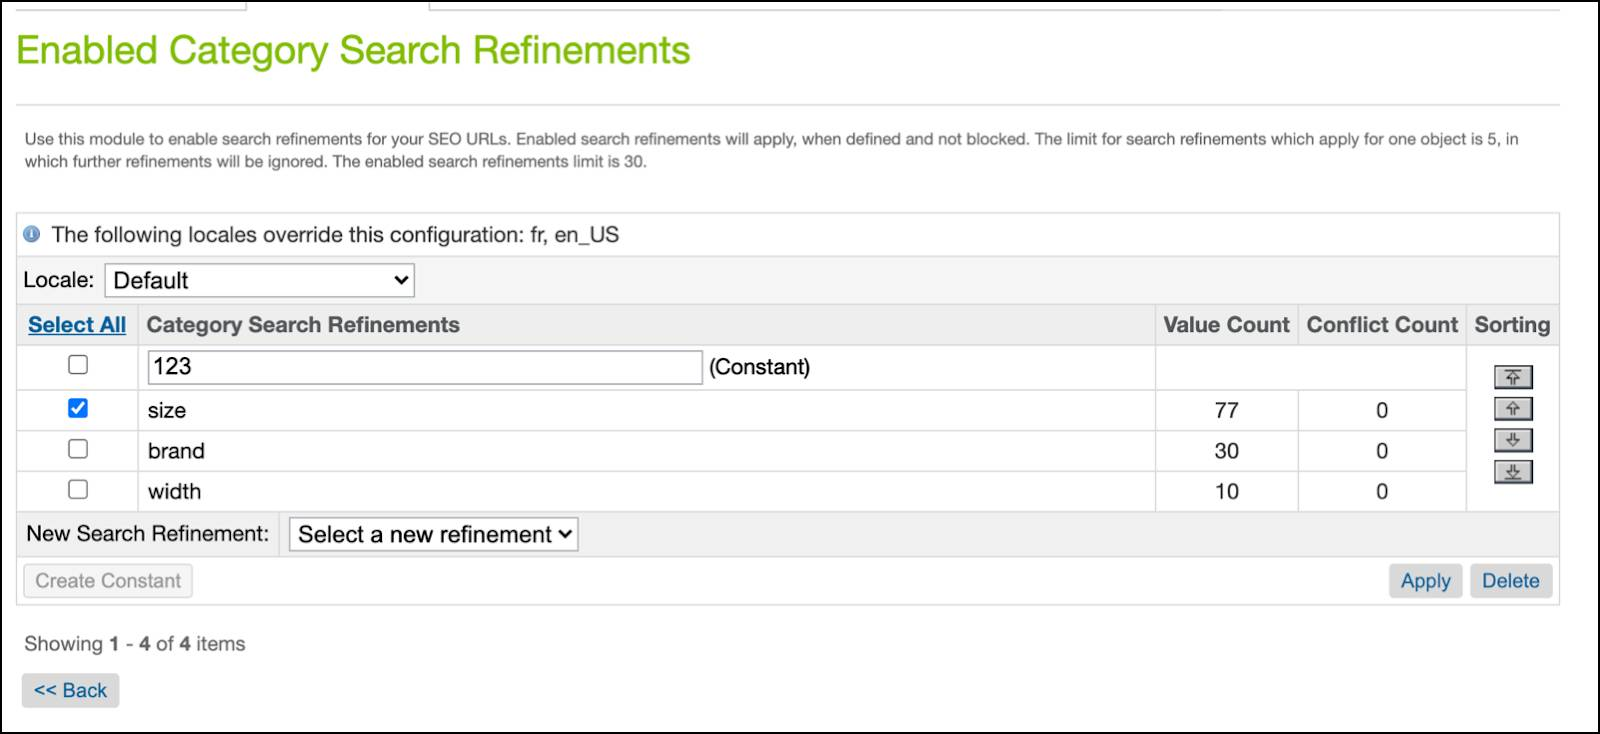 Business Manager SEO URLs, enabled category search refinements